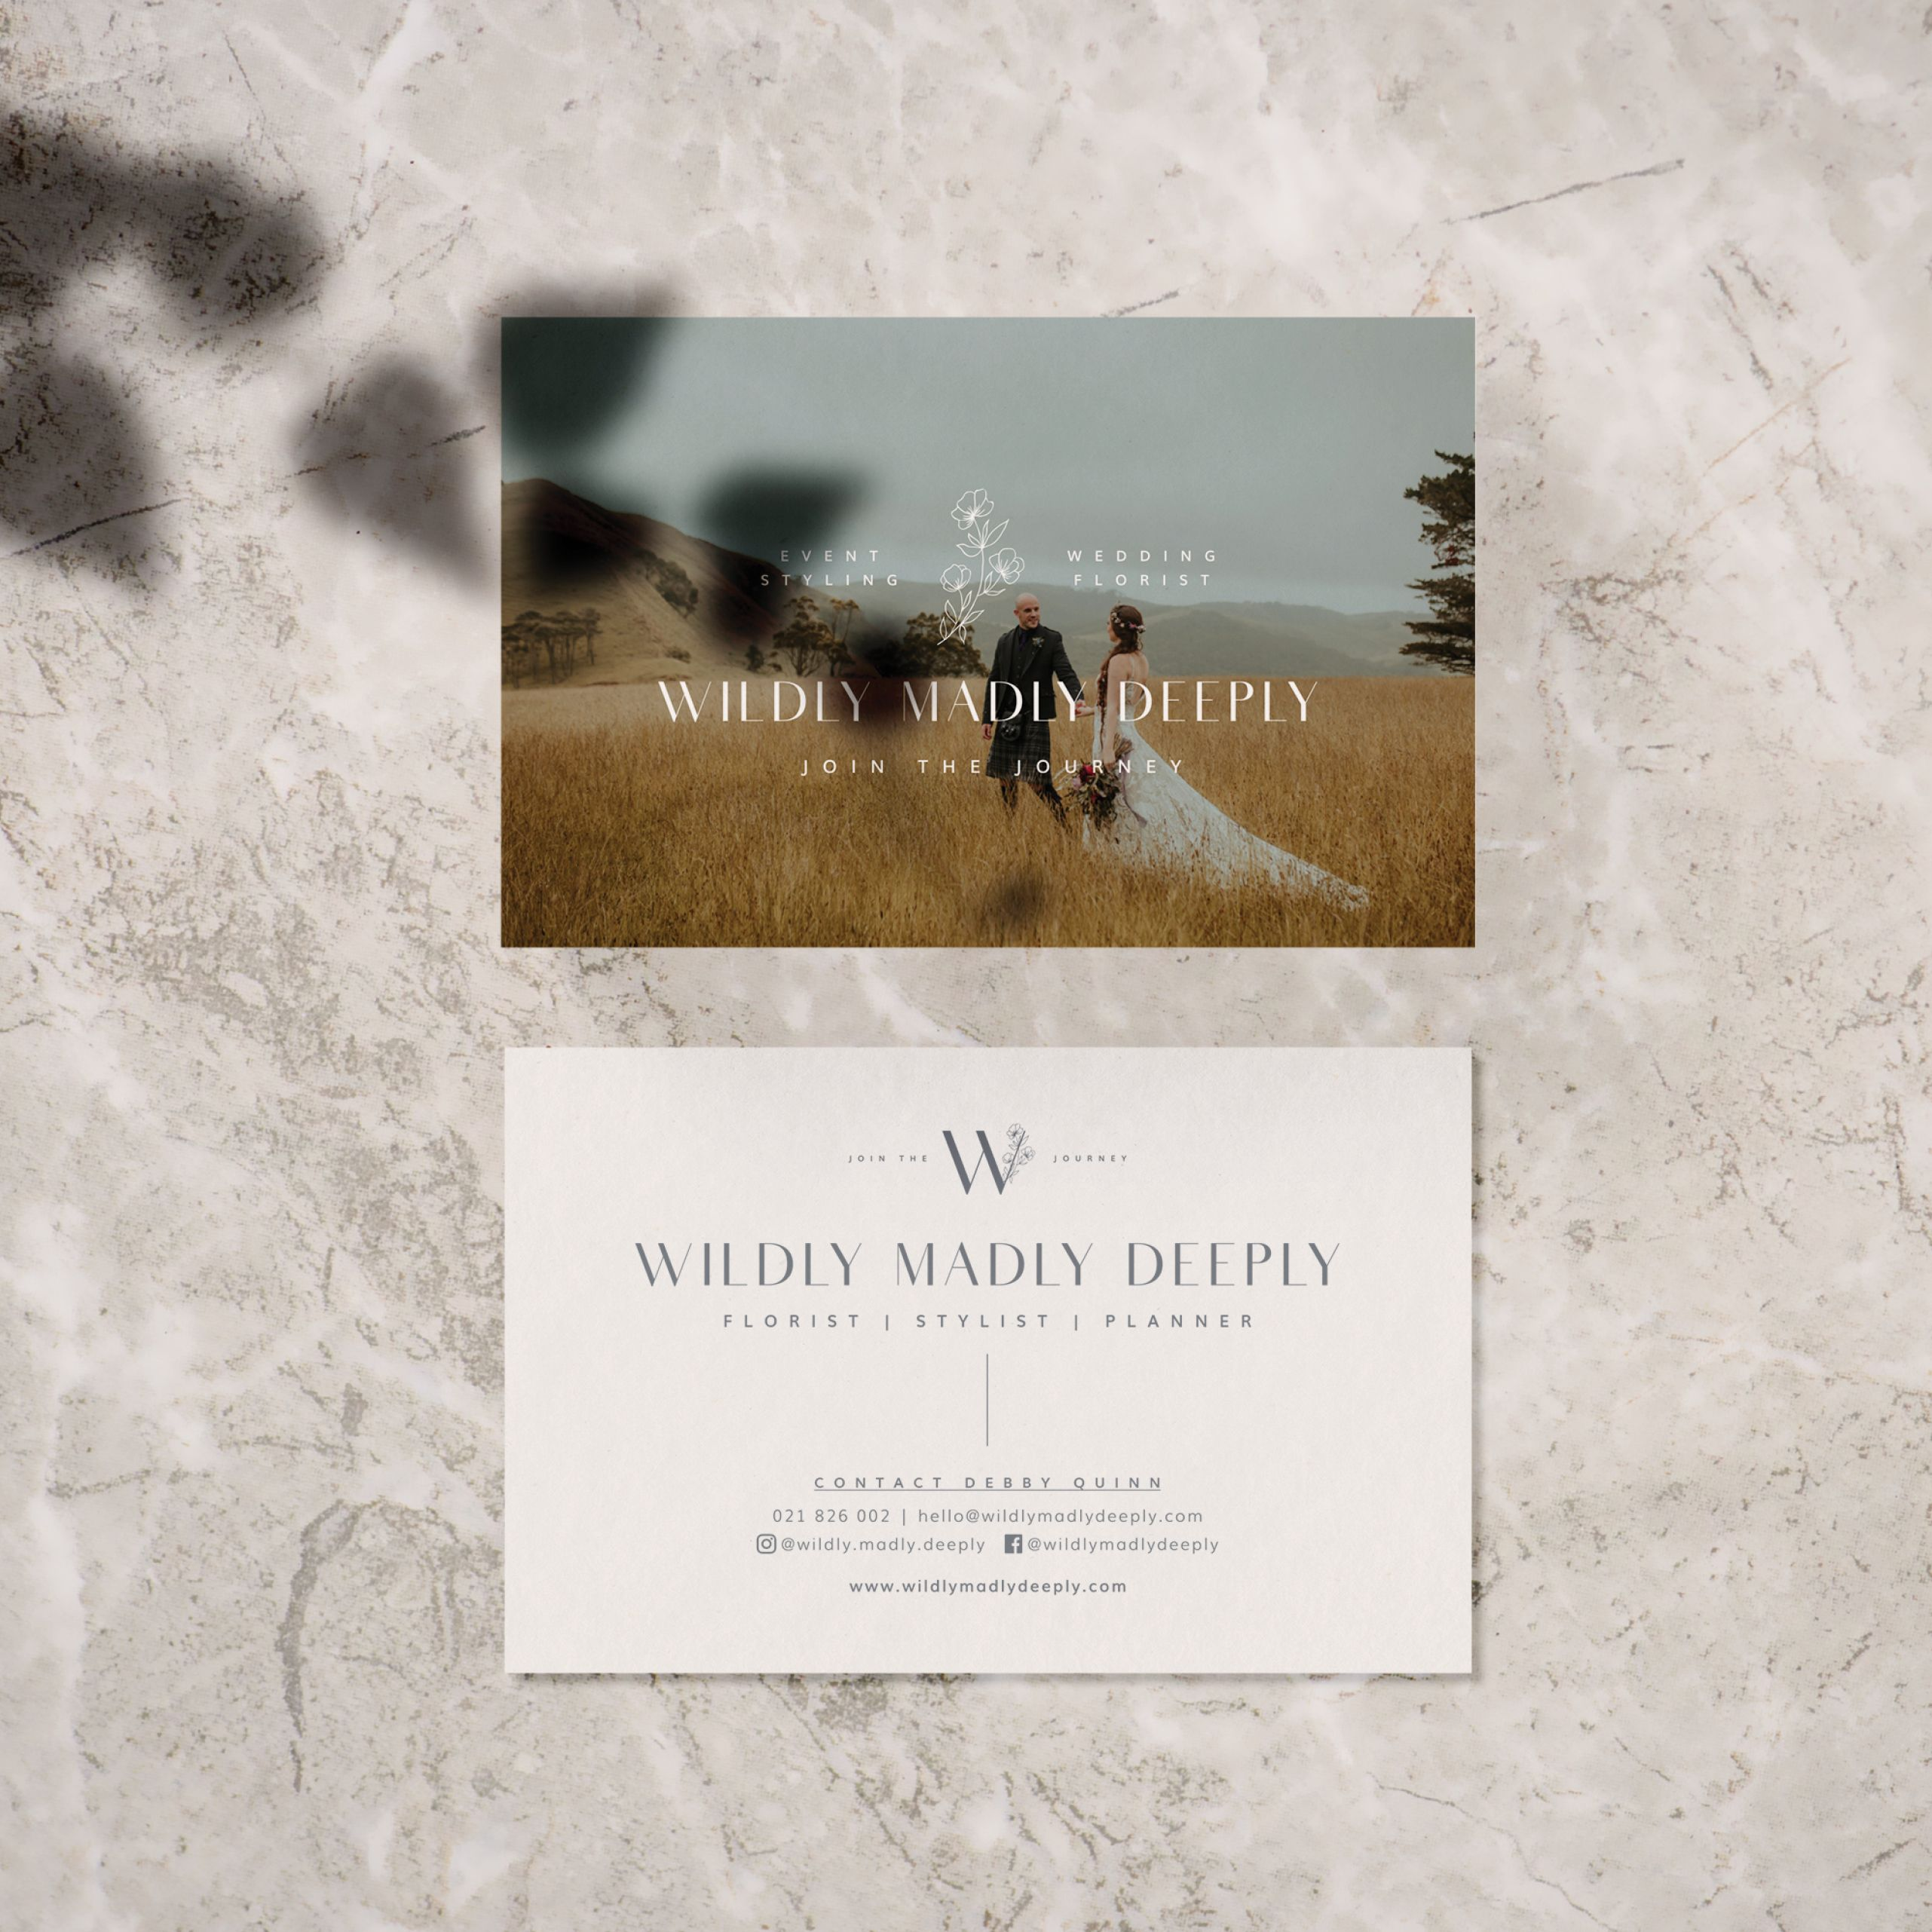 Beautiful Beyond Words These Postcards For Wildly Madly Deeply